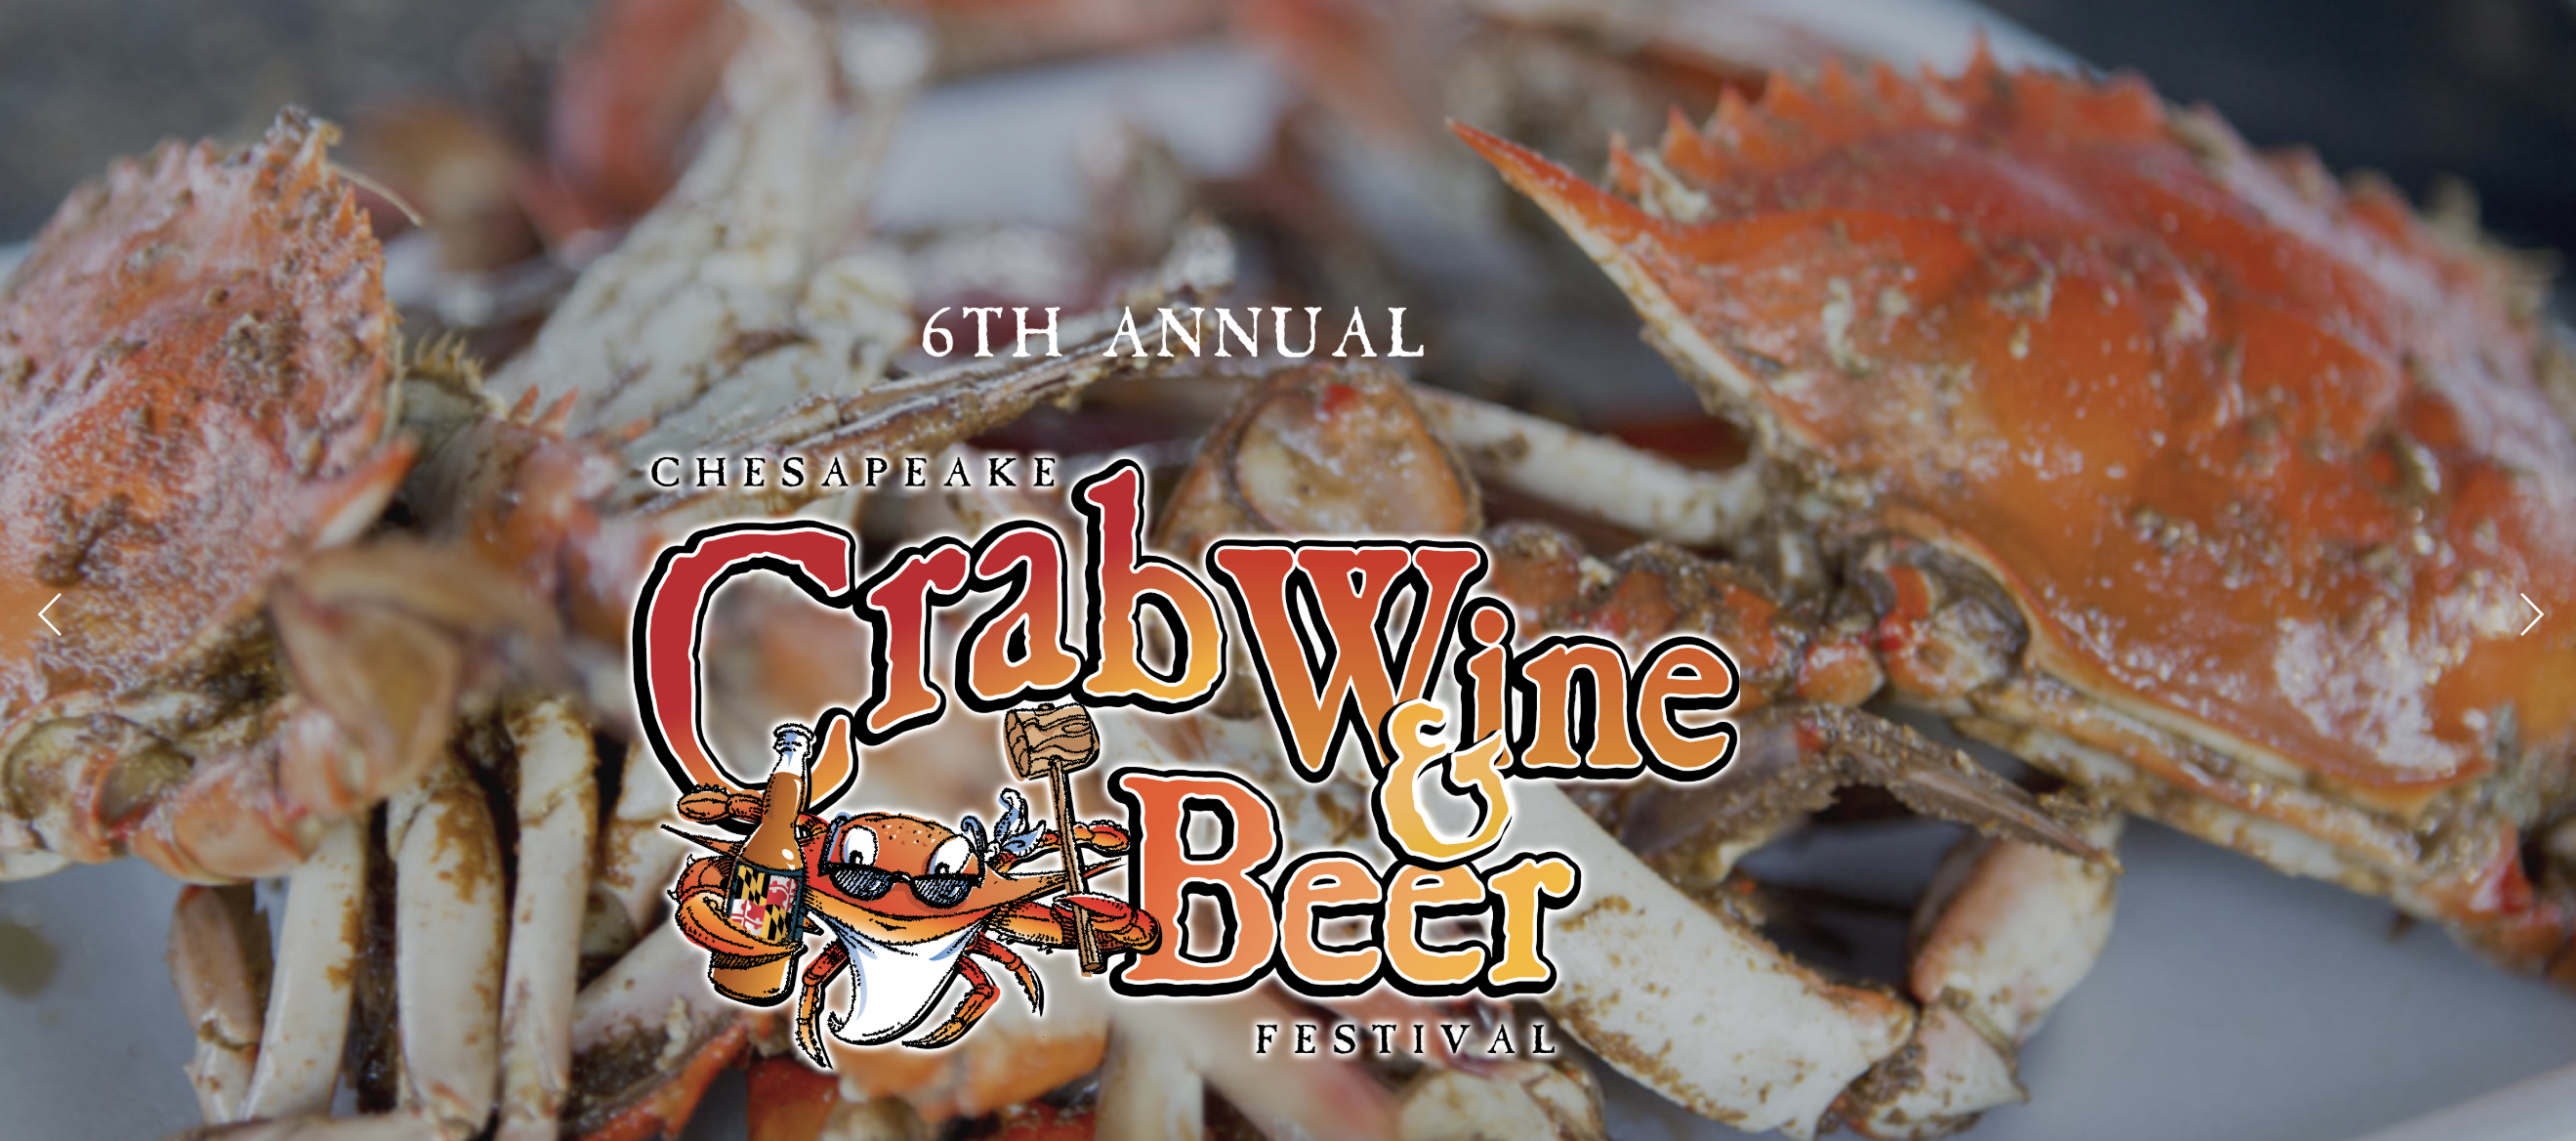 Chesapeake Crab, Beer & Wine Festival - Snag-A-Slip - Baltimore Inner Harbor Marina